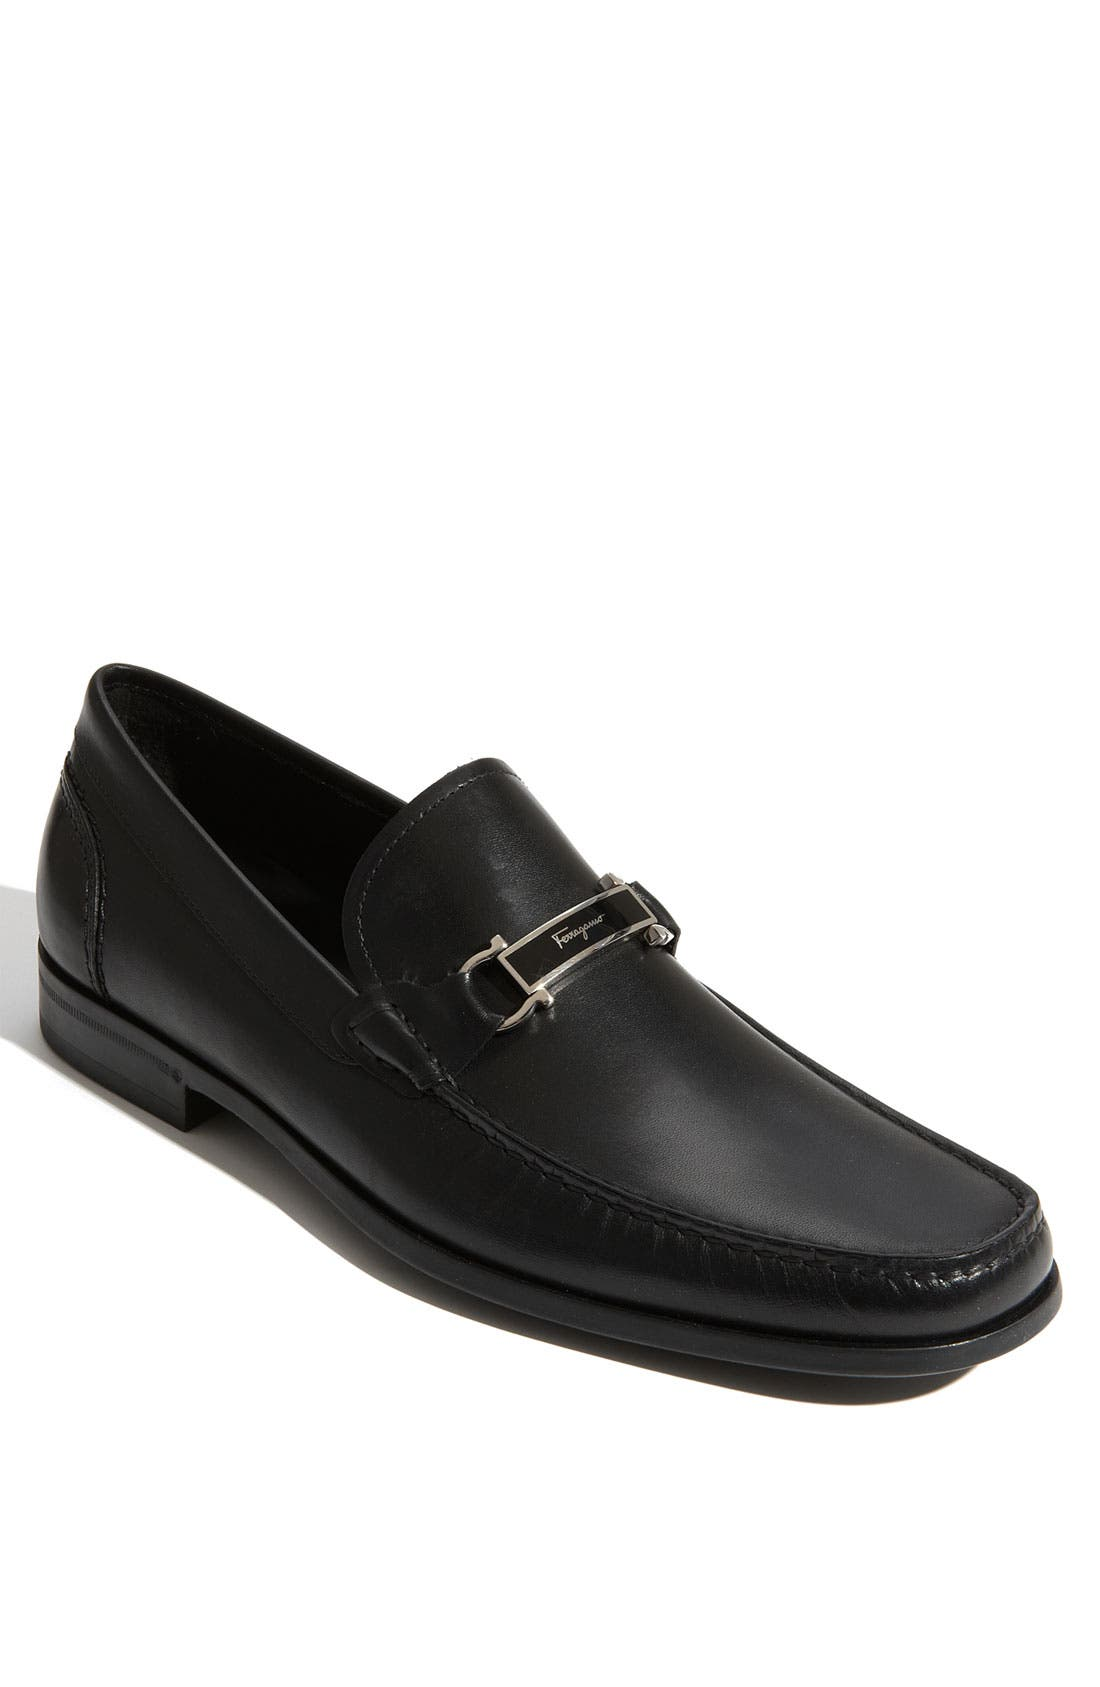 Main Image - Salvatore Ferragamo 'Bueno' Loafer